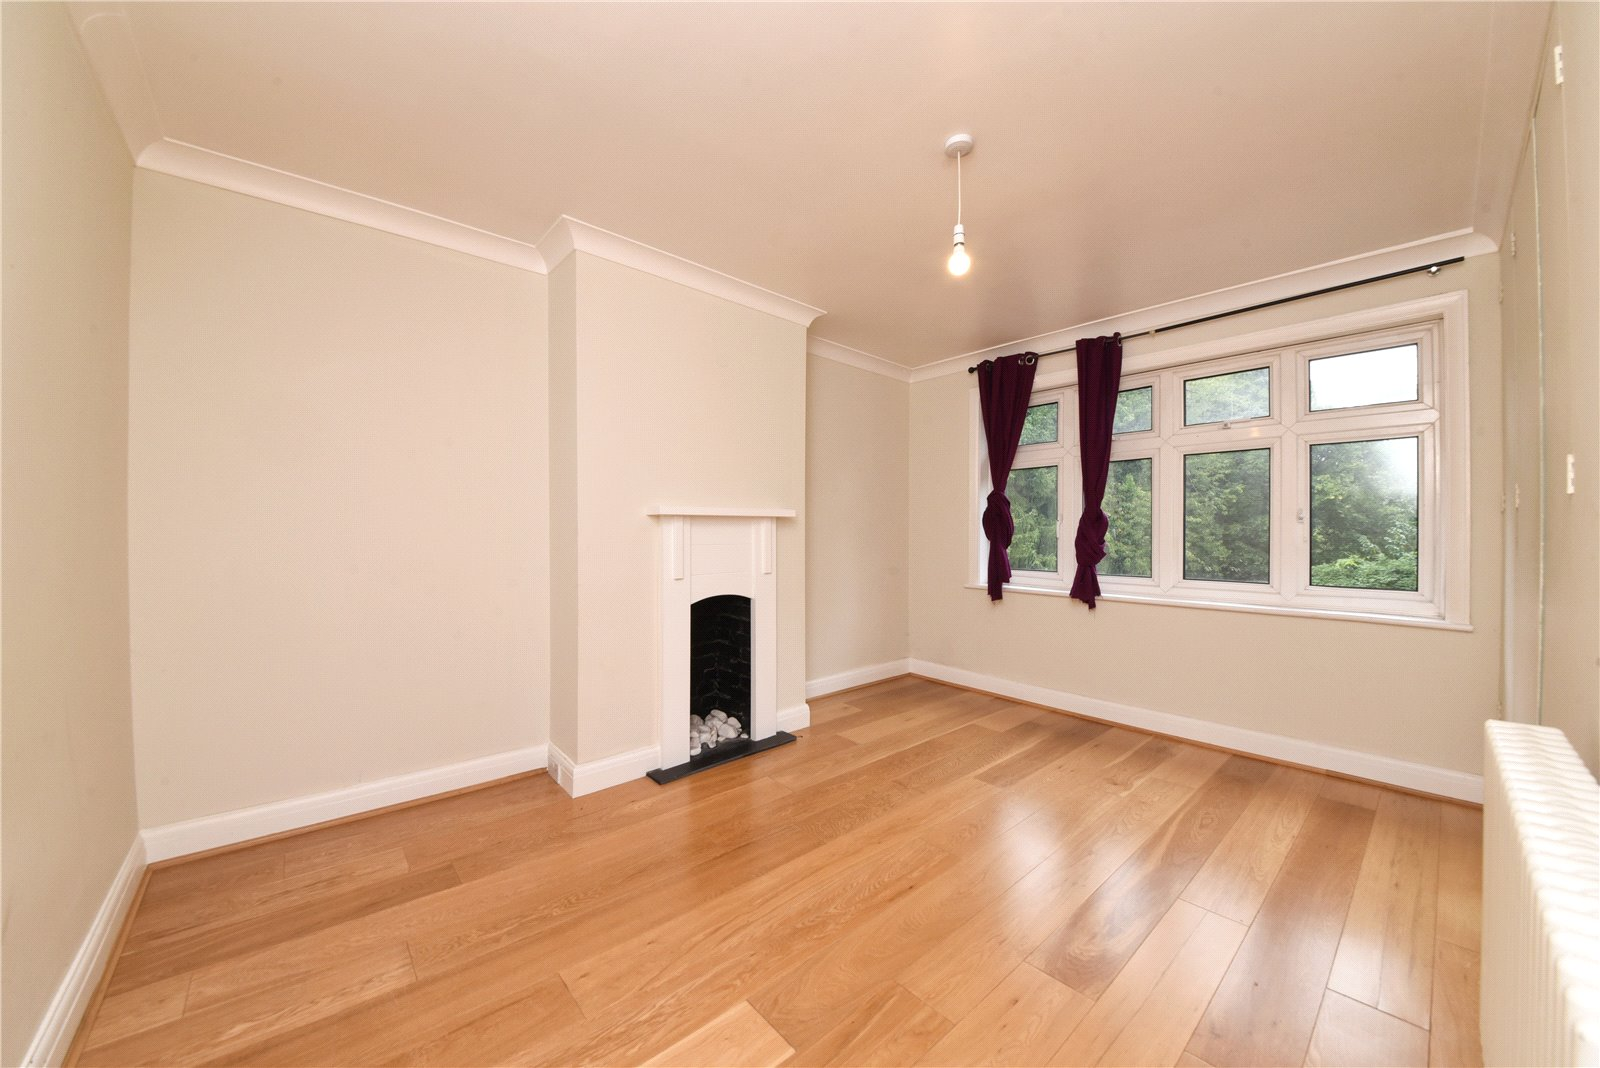 4 bed house to rent in Longland Drive, Totteridge  - Property Image 8